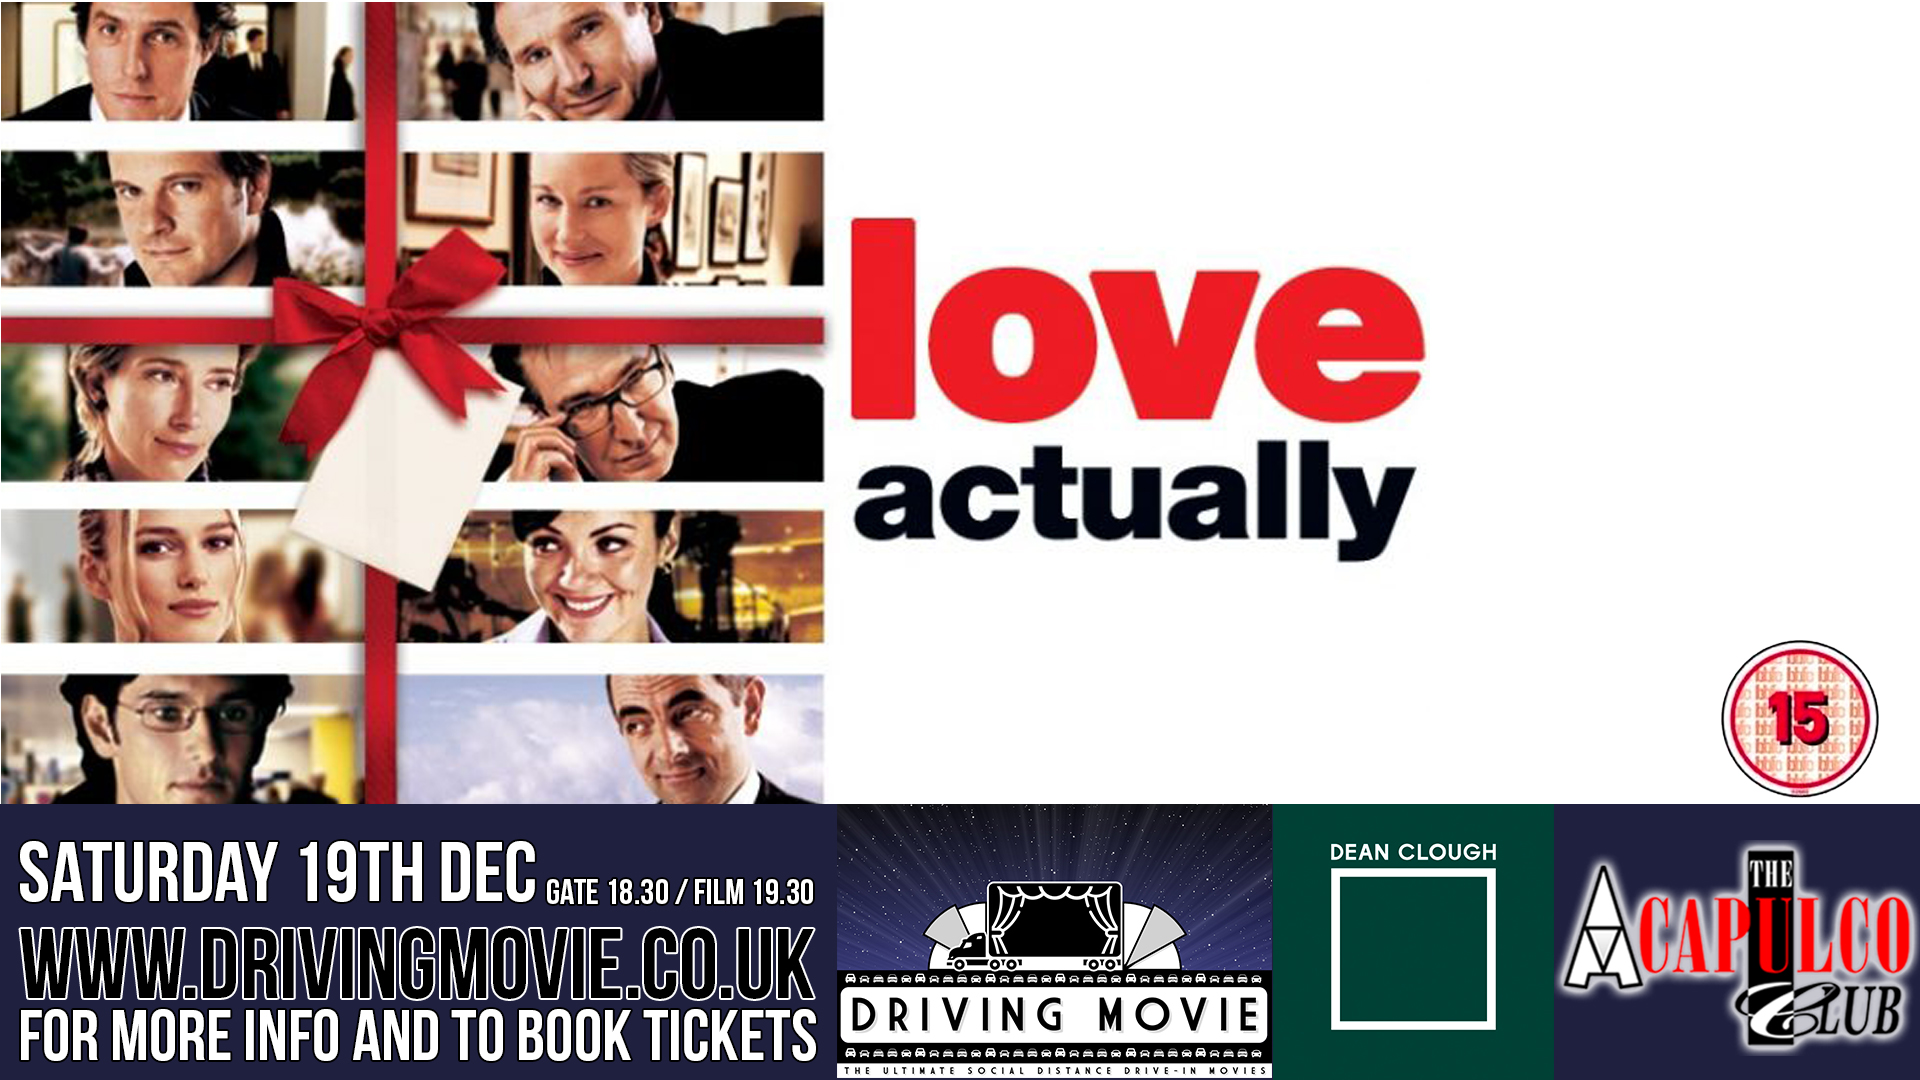 Acapulco Nightclub Halifax presents a Drive In Movie